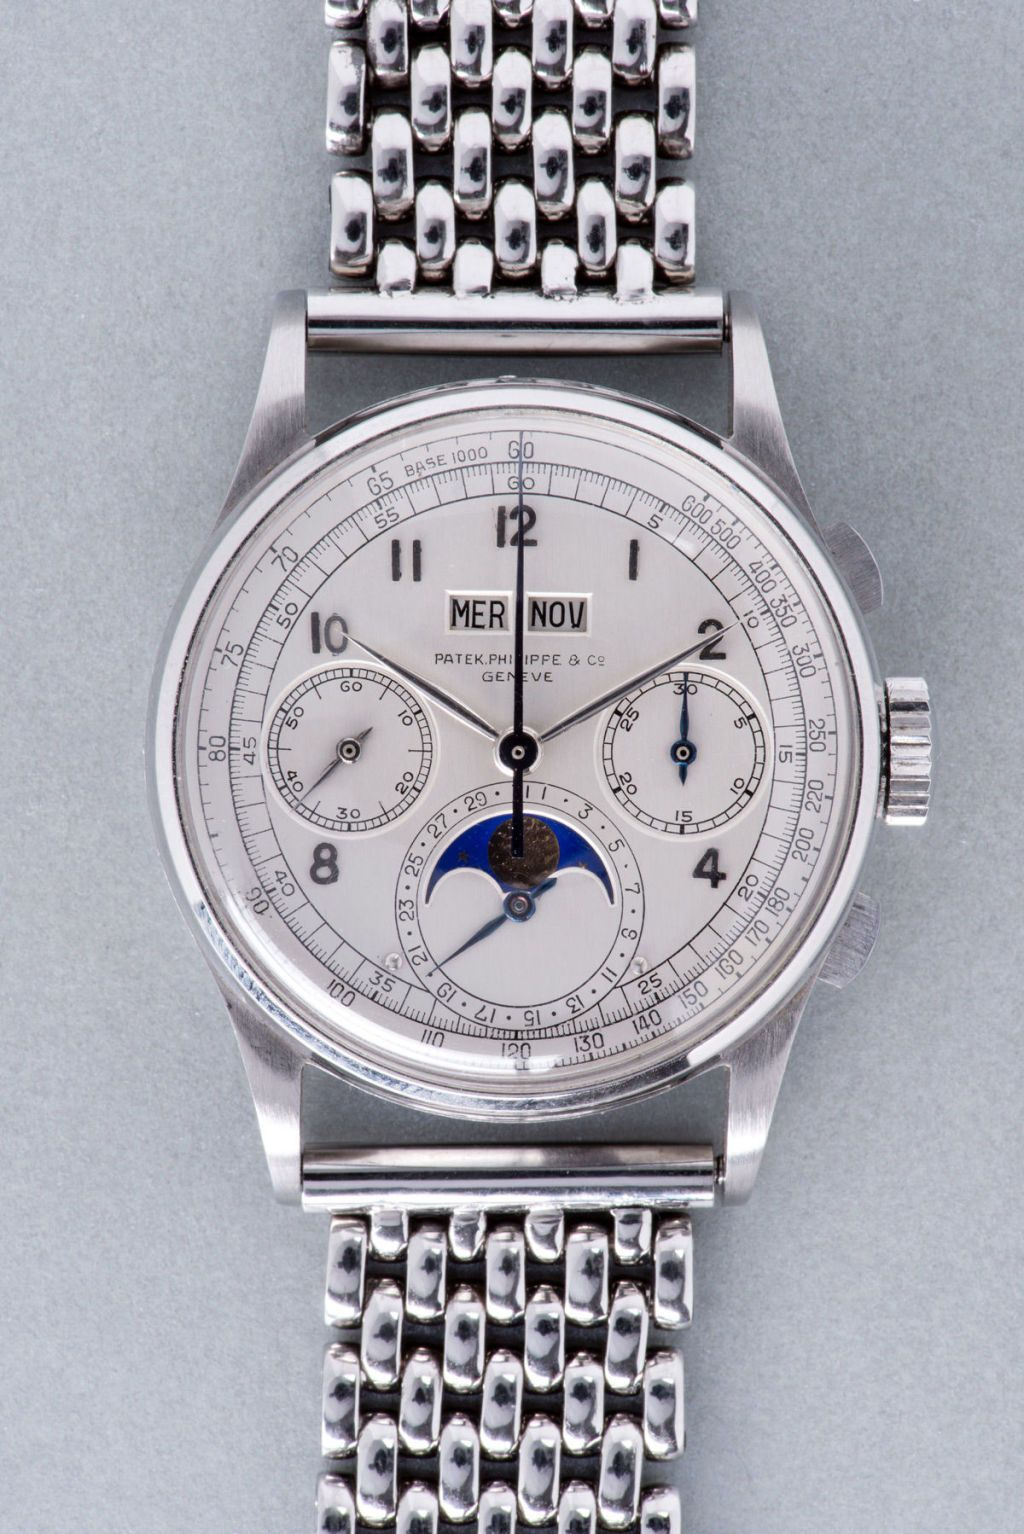 834f1c87671 This Is the Most Expensive Watch Ever Sold at Auction - Esquire.com